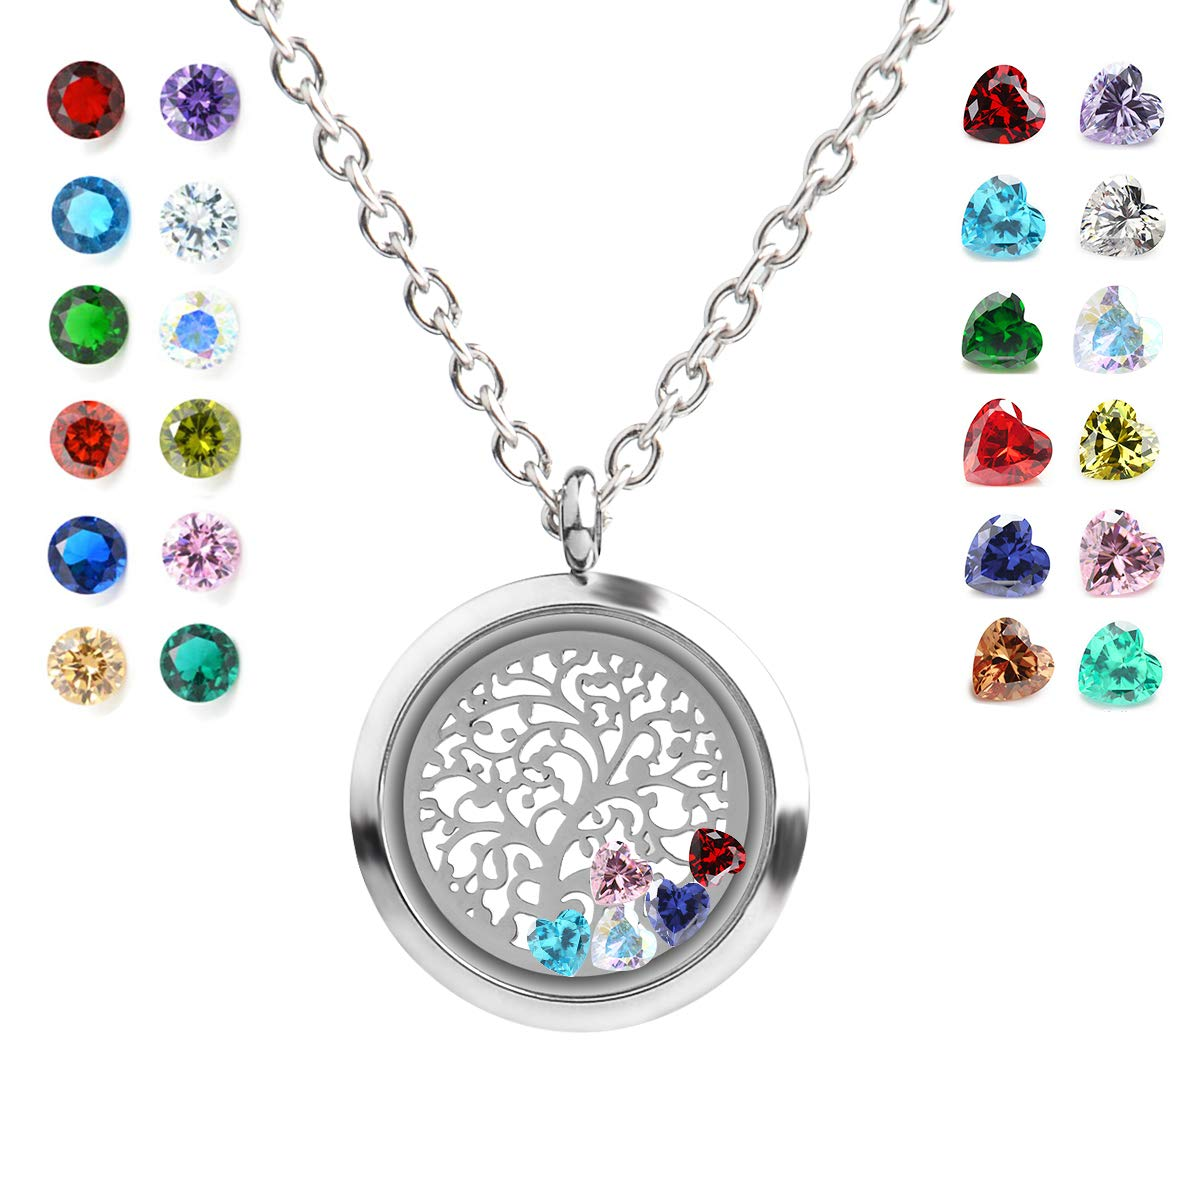 CrazyPiercing Birthstone Necklace, Family Tree of Life Floating Living Memory Round Locket Pendant Necklace 24